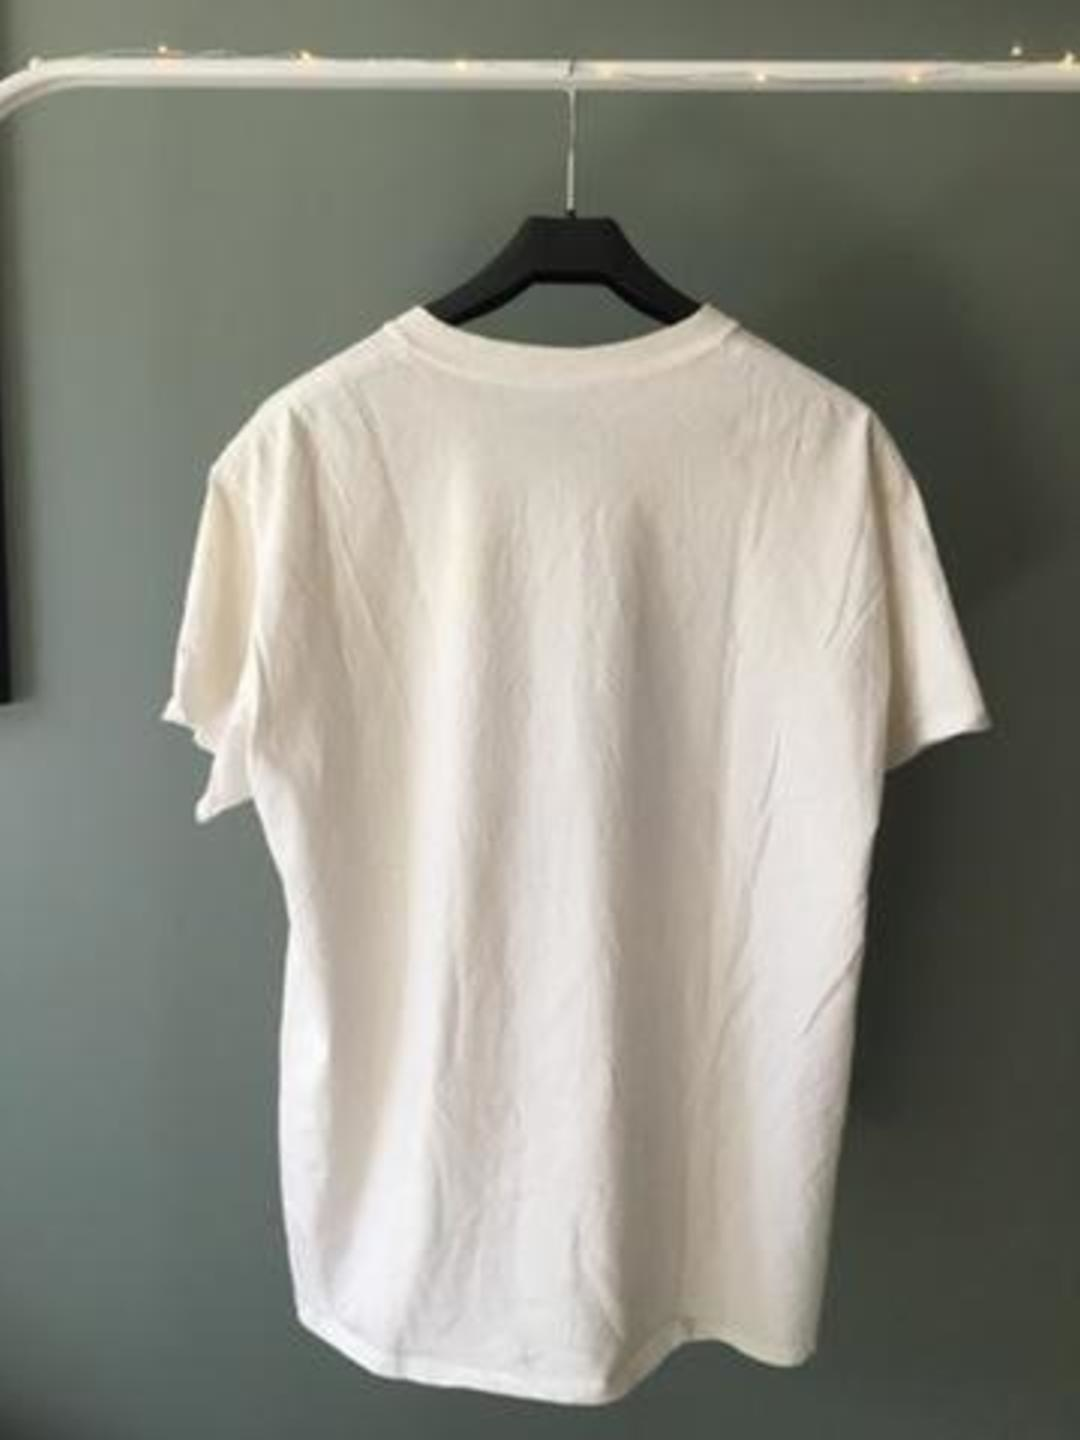 Women's tops & t-shirts - URBAN OUTFITTERS photo 2